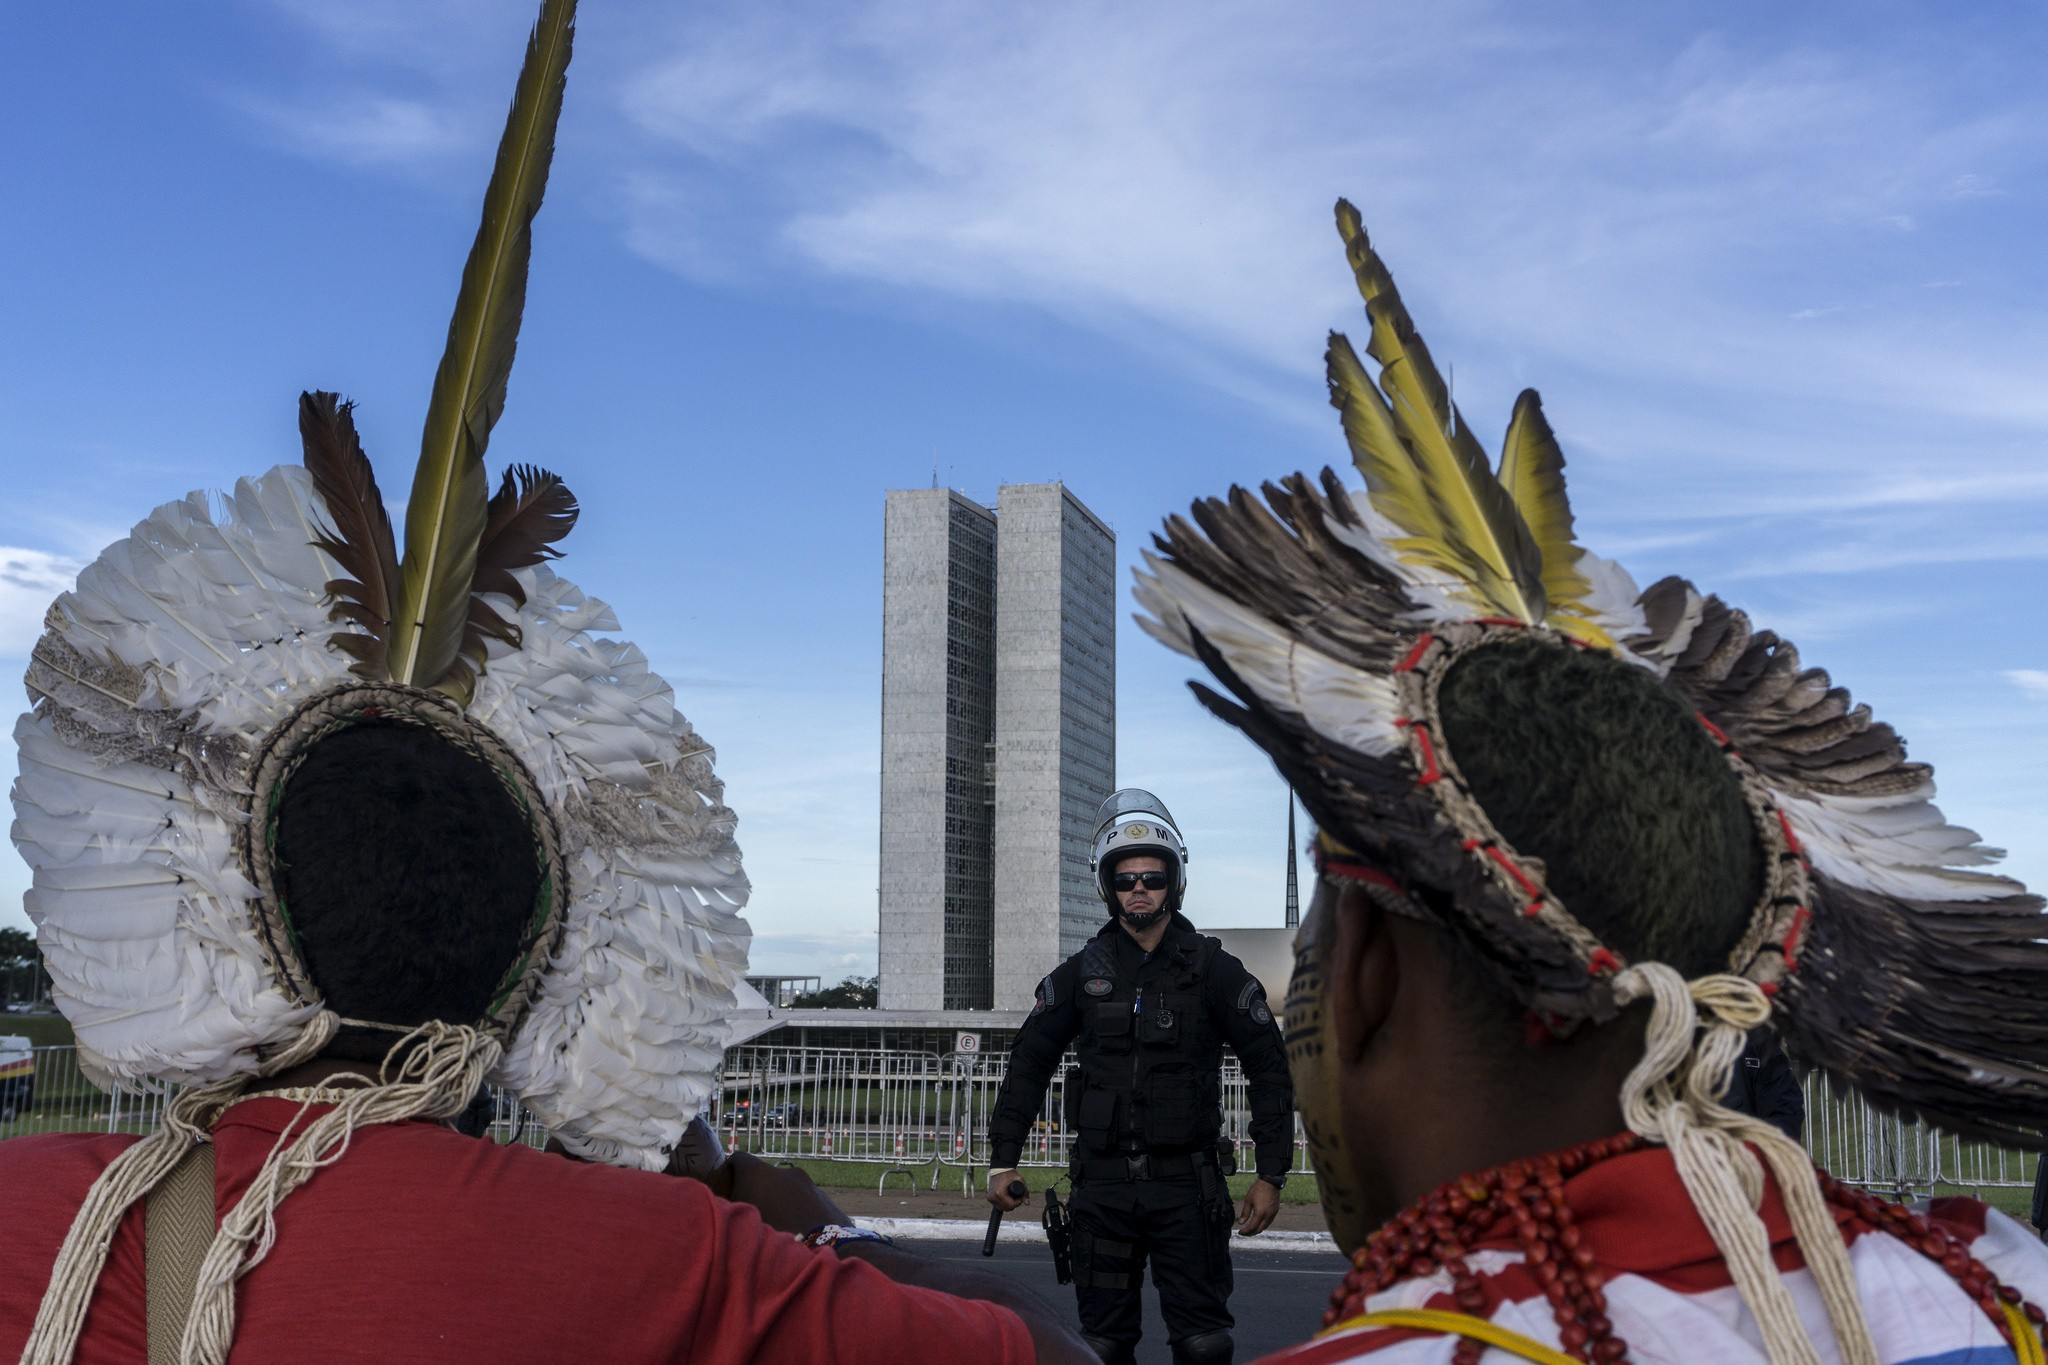 Indigenous activists confronted by police outside Brazil's Congress | © Rogério Assis/Mobilização Nacional Indígena/Flickr